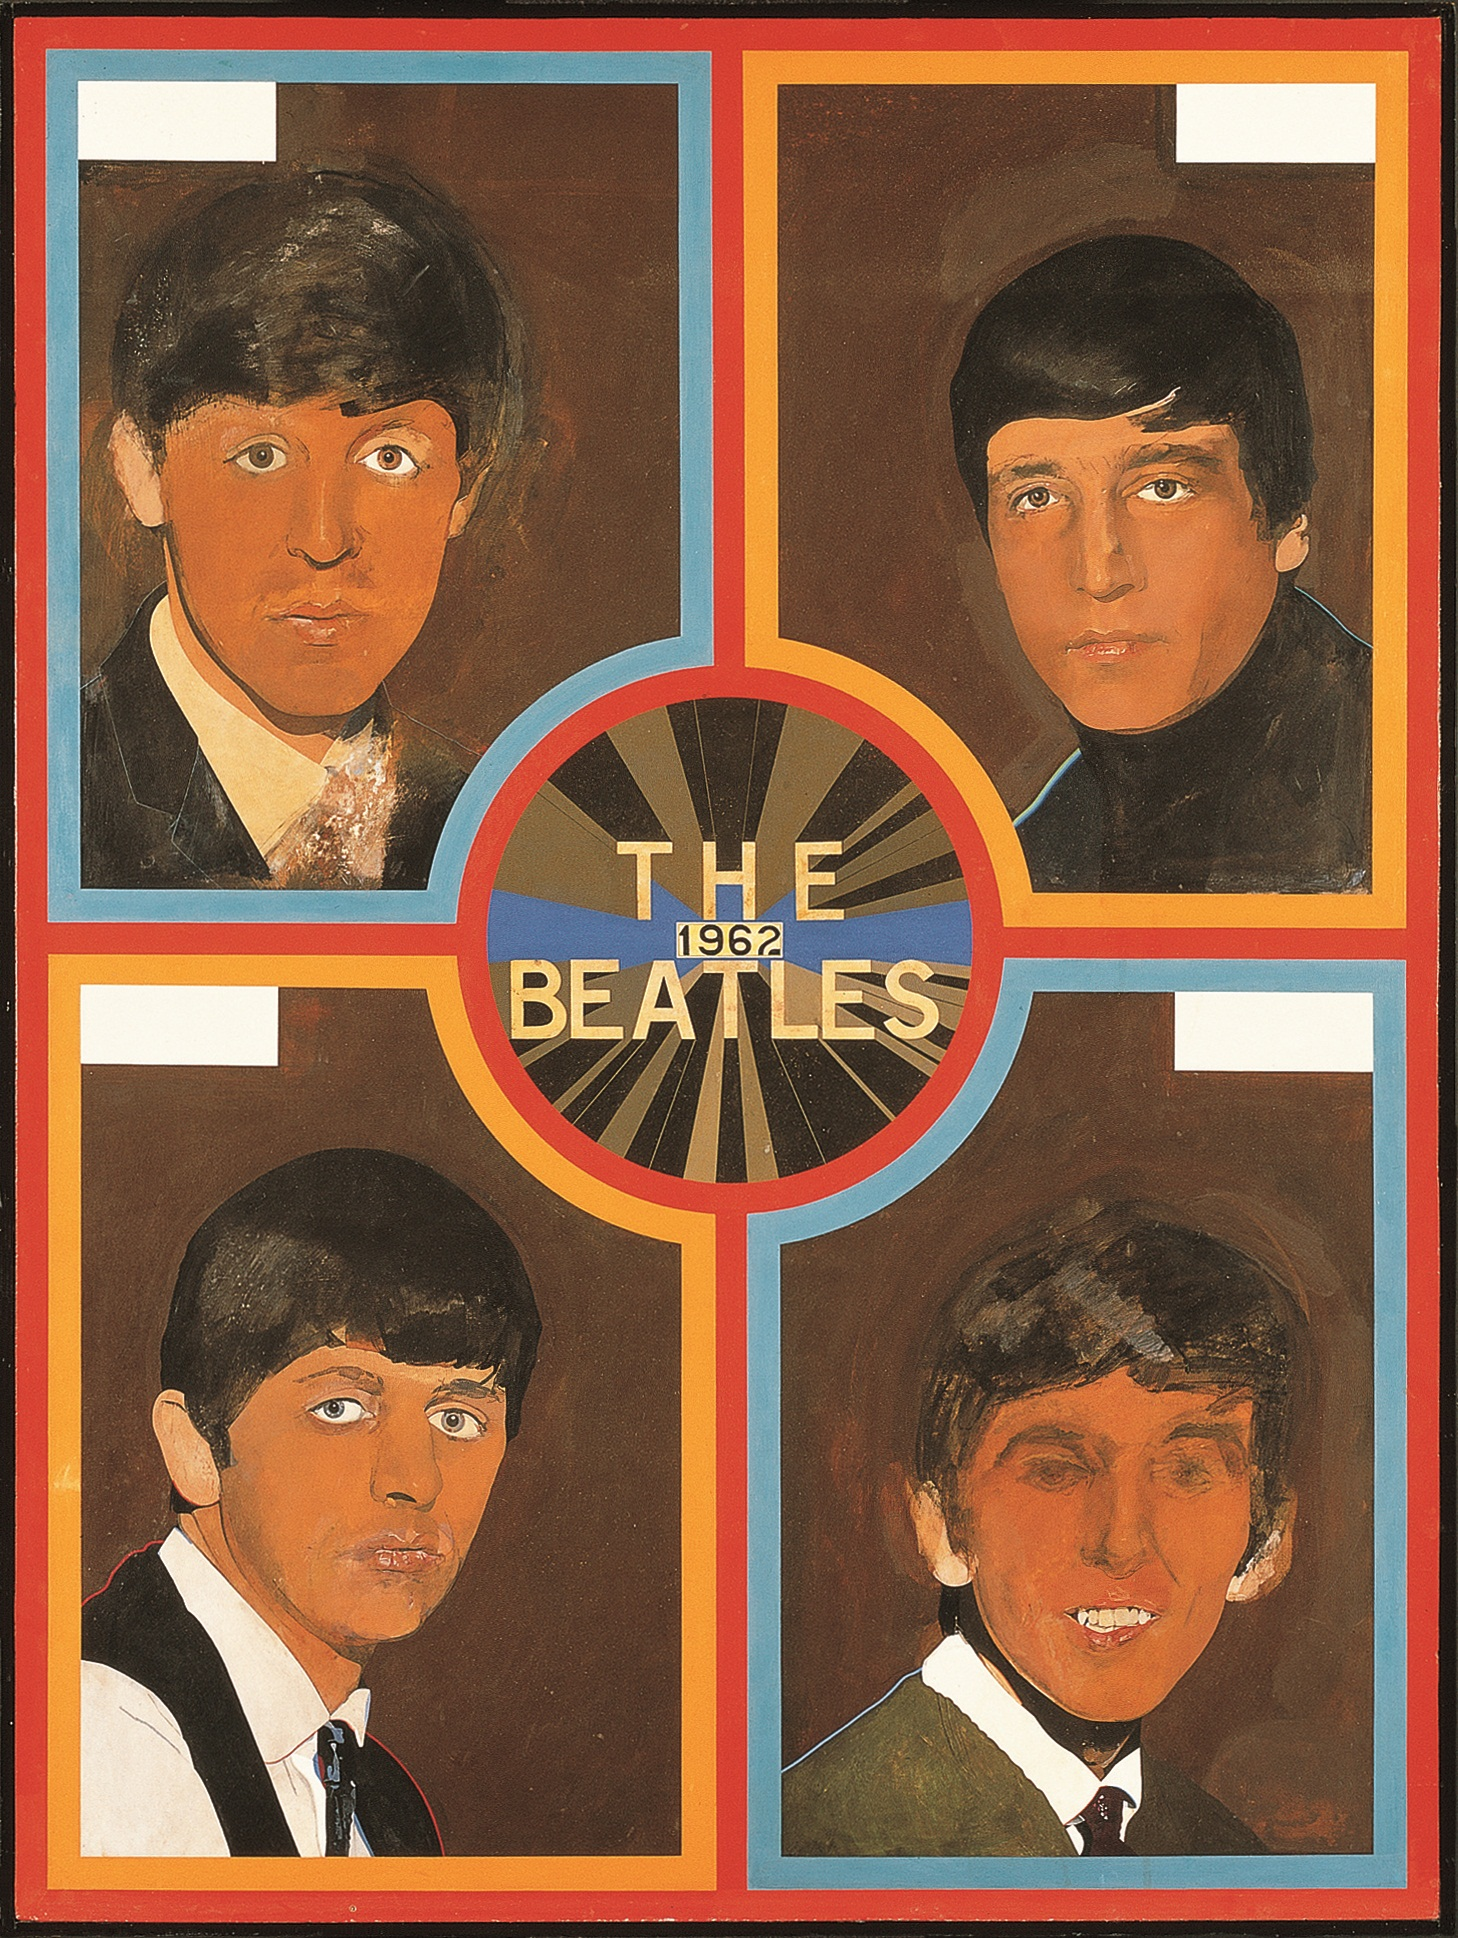 The Beatles 1962 (1963-68) by Sir Peter Blake, acrylic emulsion on hardboard. Pallant House Gallery: Wilson Gift through The Art Fund, 2004.